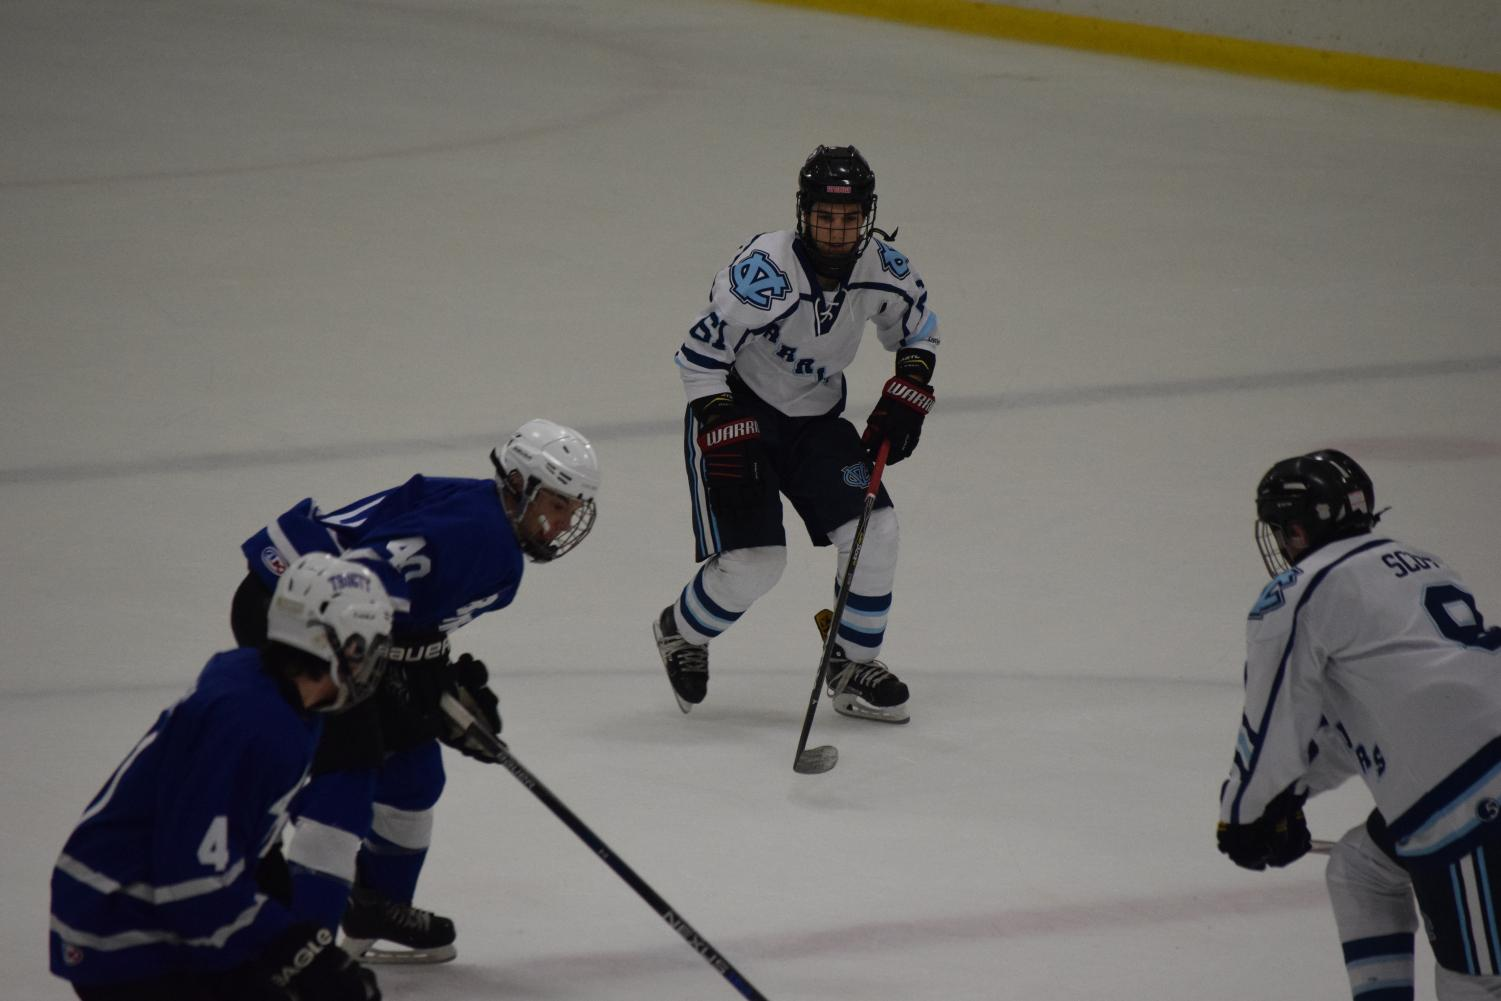 Senior James Kelly-Tindall fights towards the puck at the game on Dec. 14 against Connellsville.